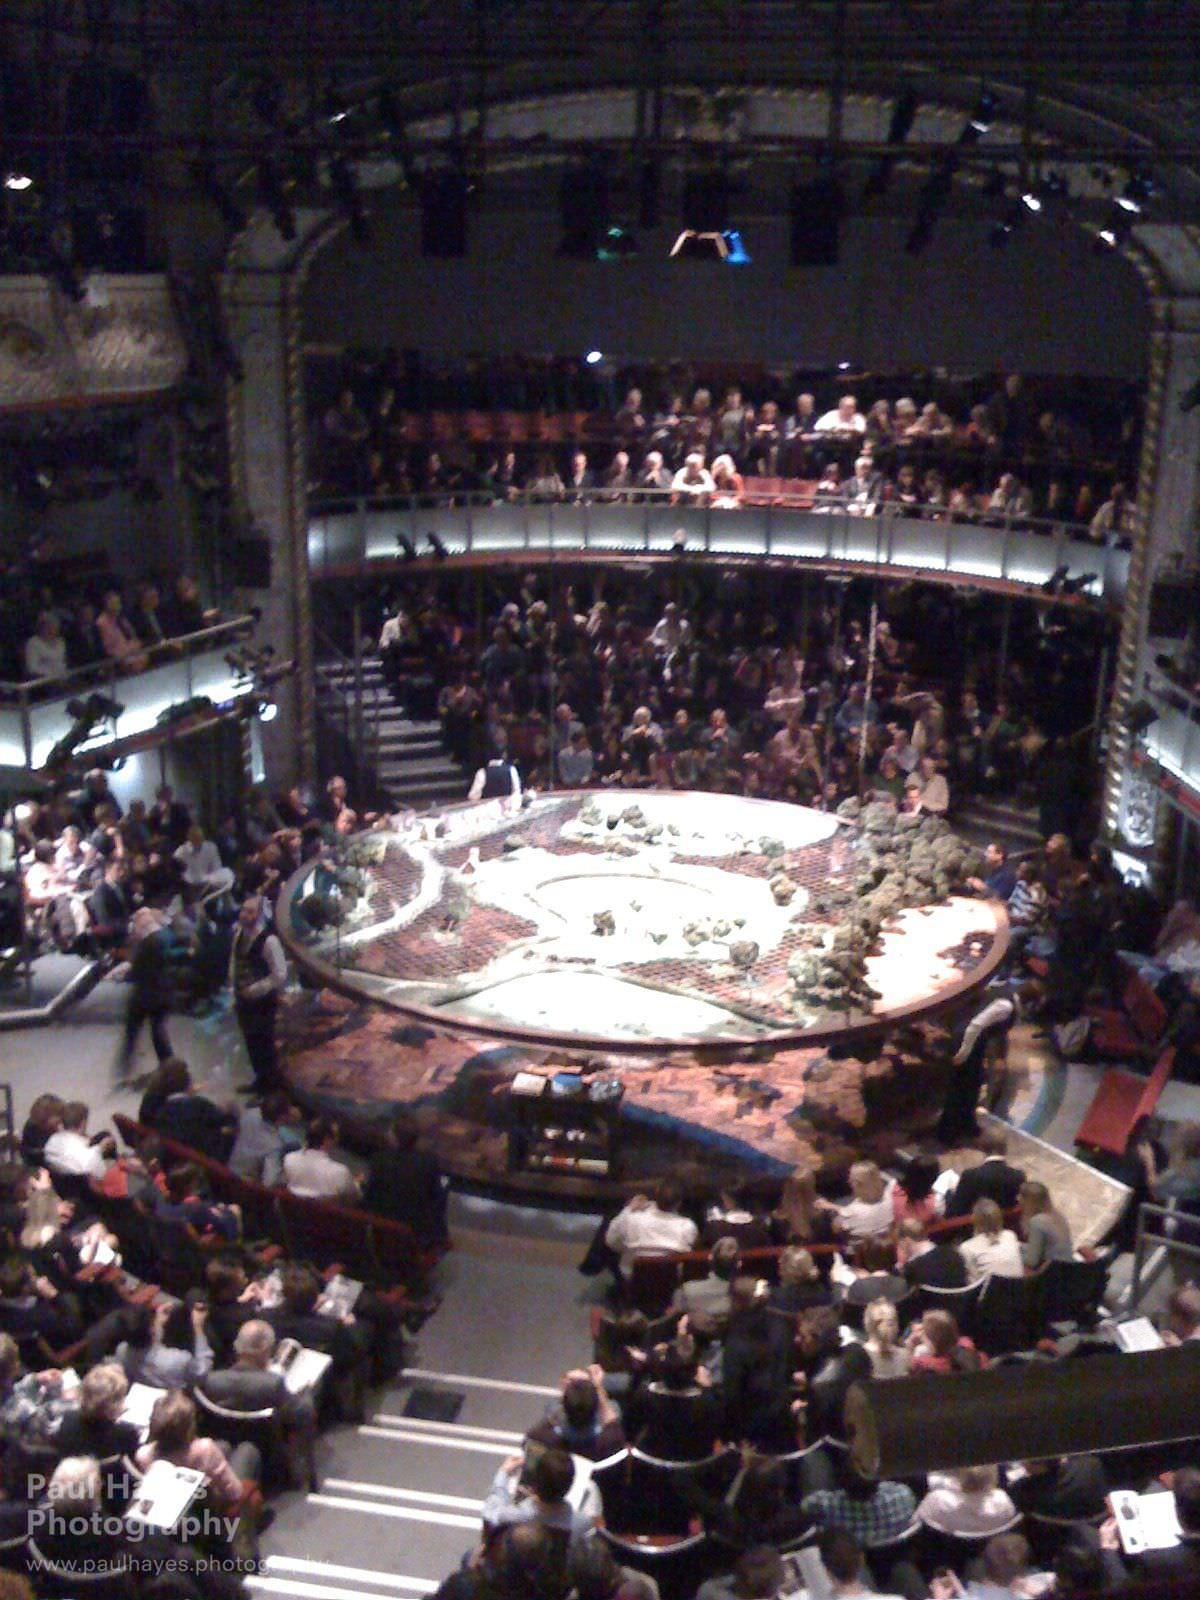 The circular stage at the Old Vic